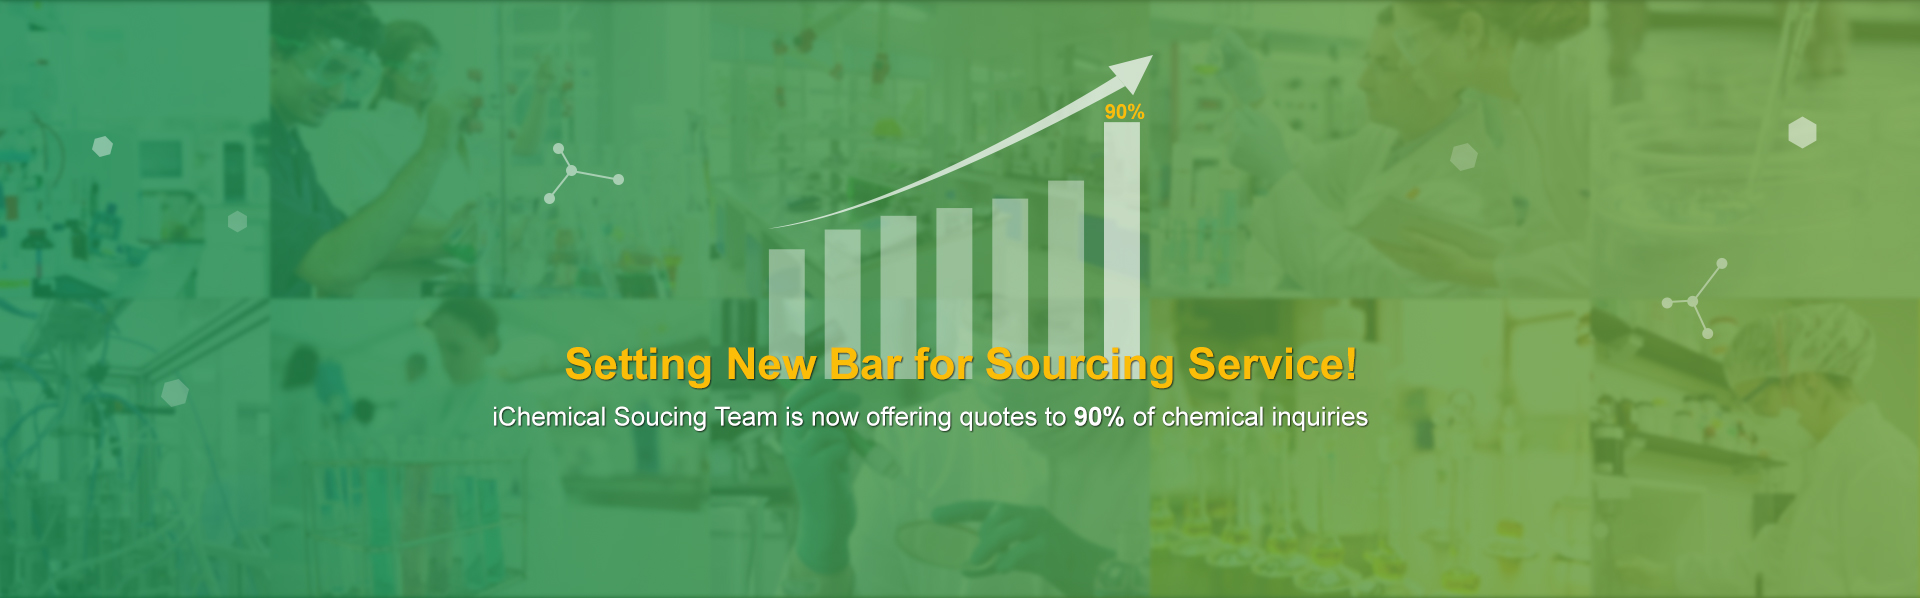 Setting new bar for sourcing service!